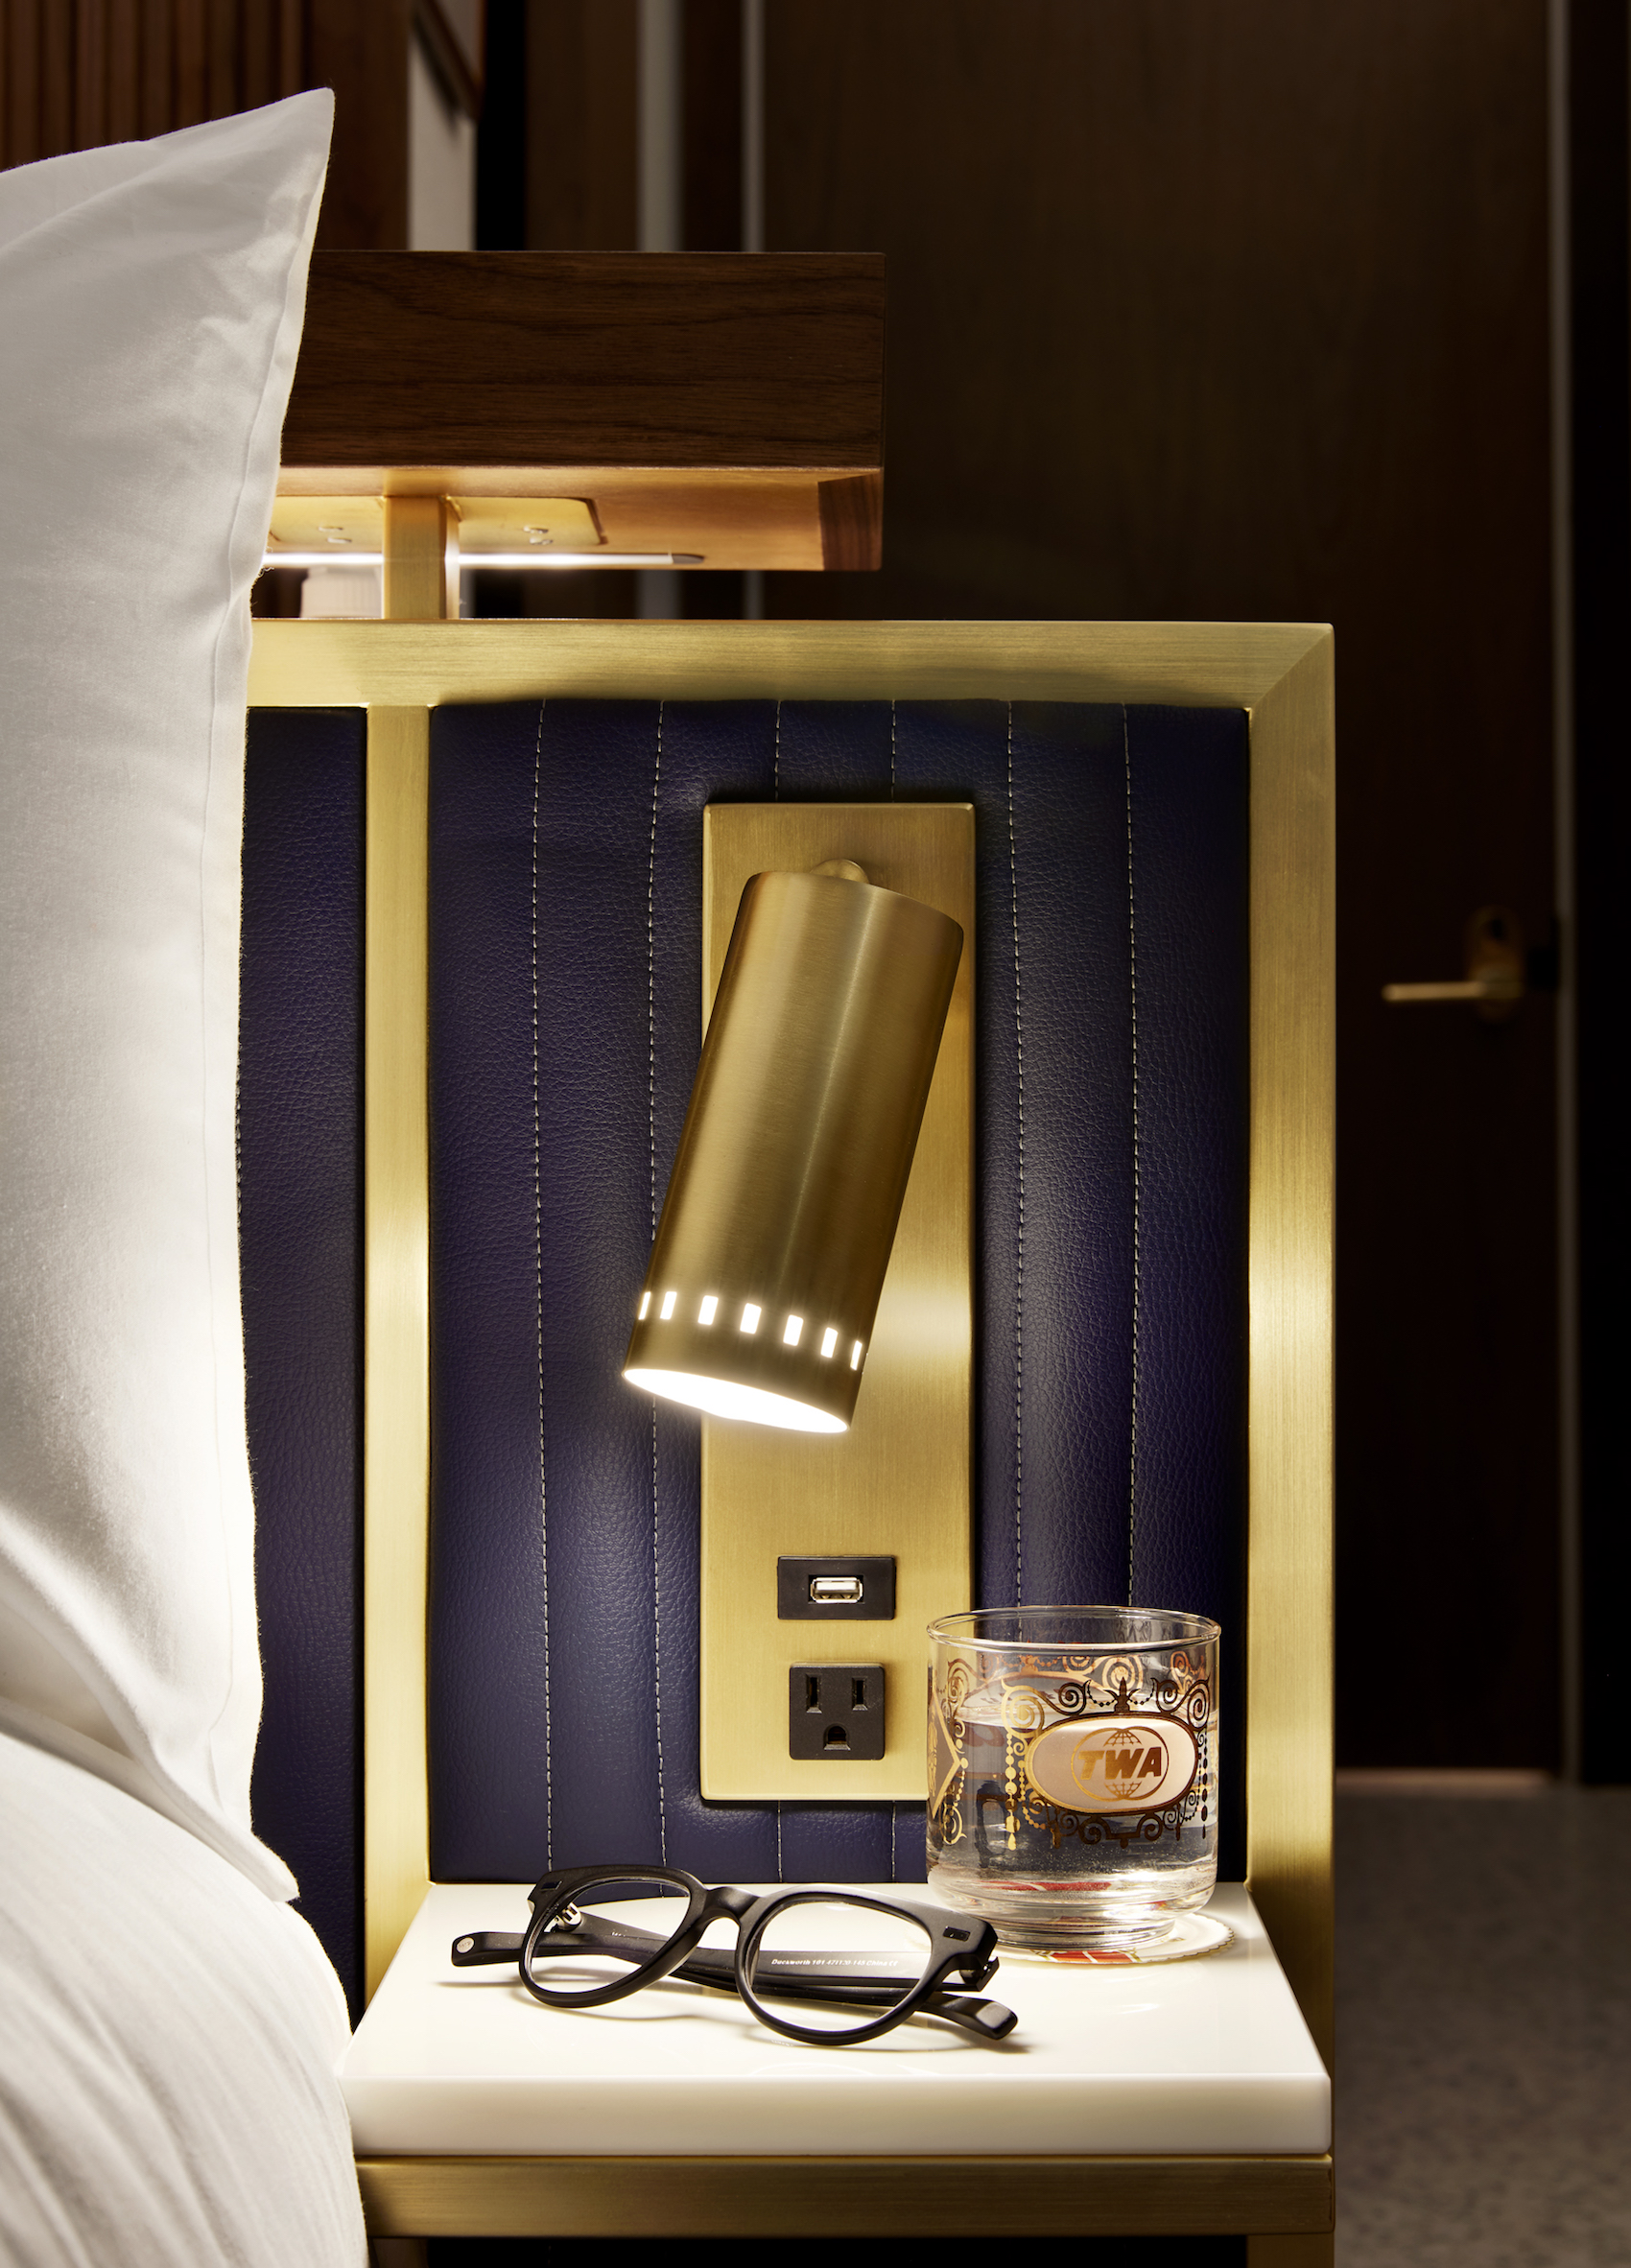 Hotel Guest Room: First Look At The Glamorous, Sixties-inspired Guest Rooms